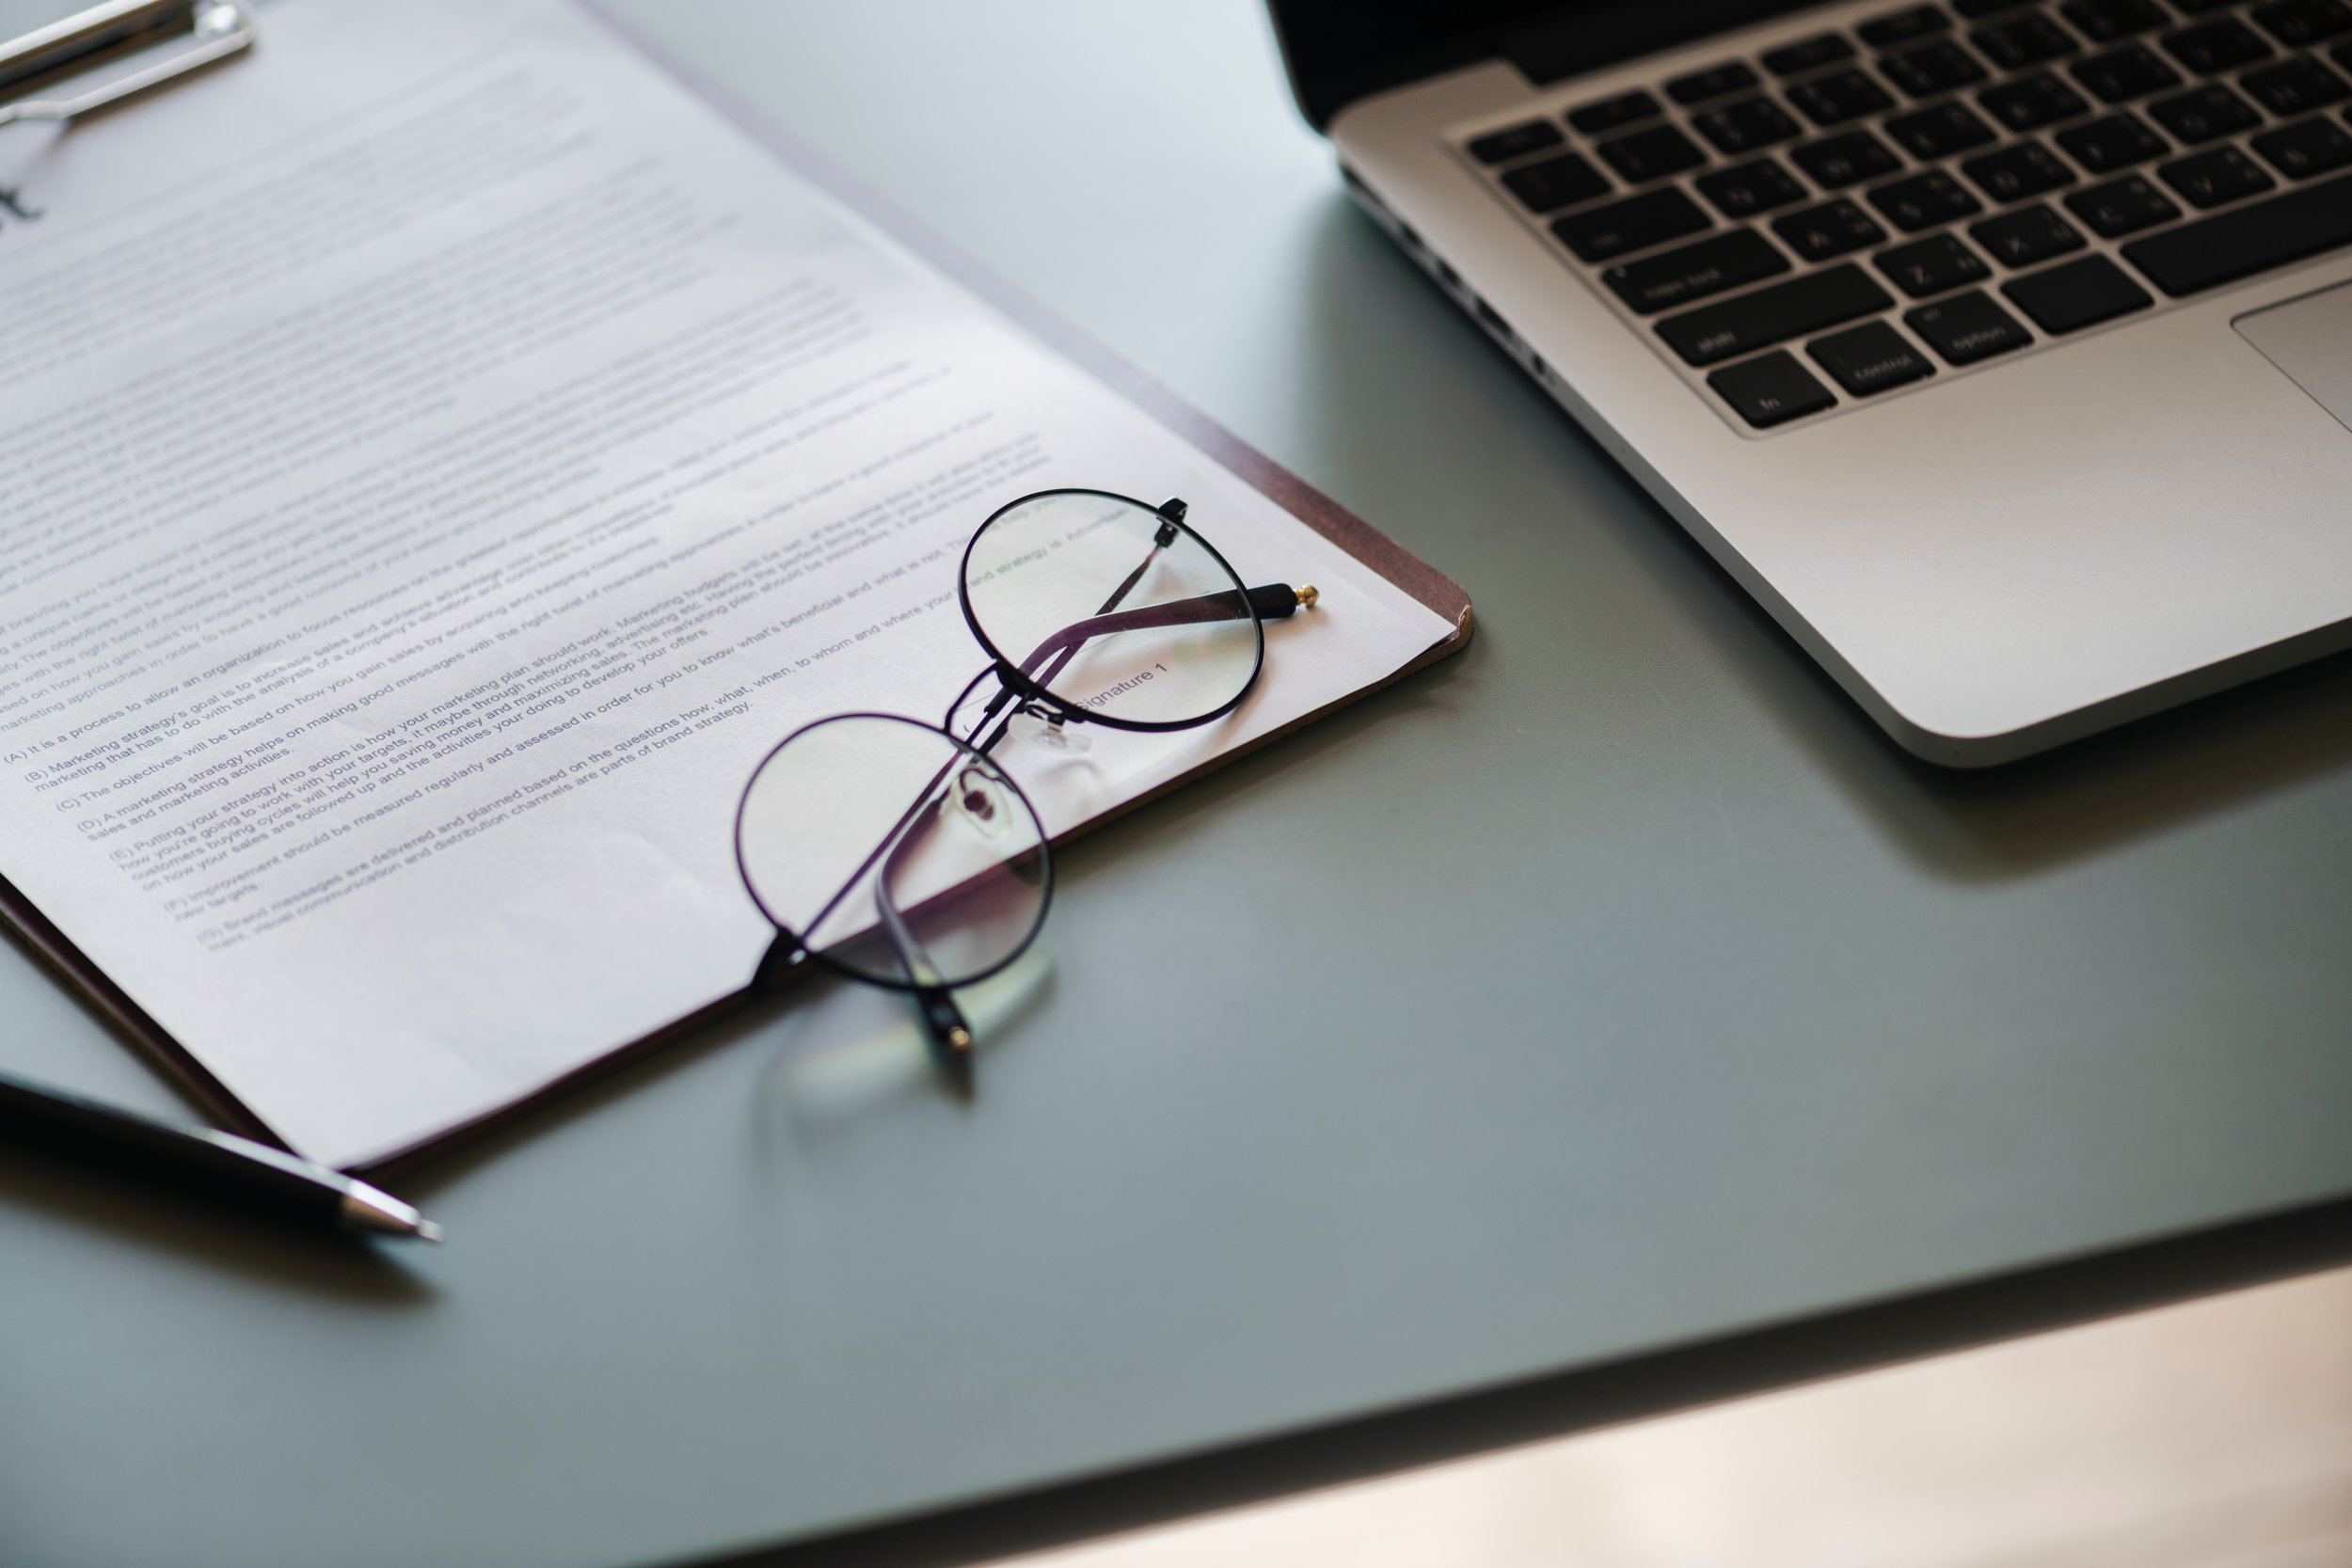 glasses-computer-paper-on-table.jpg